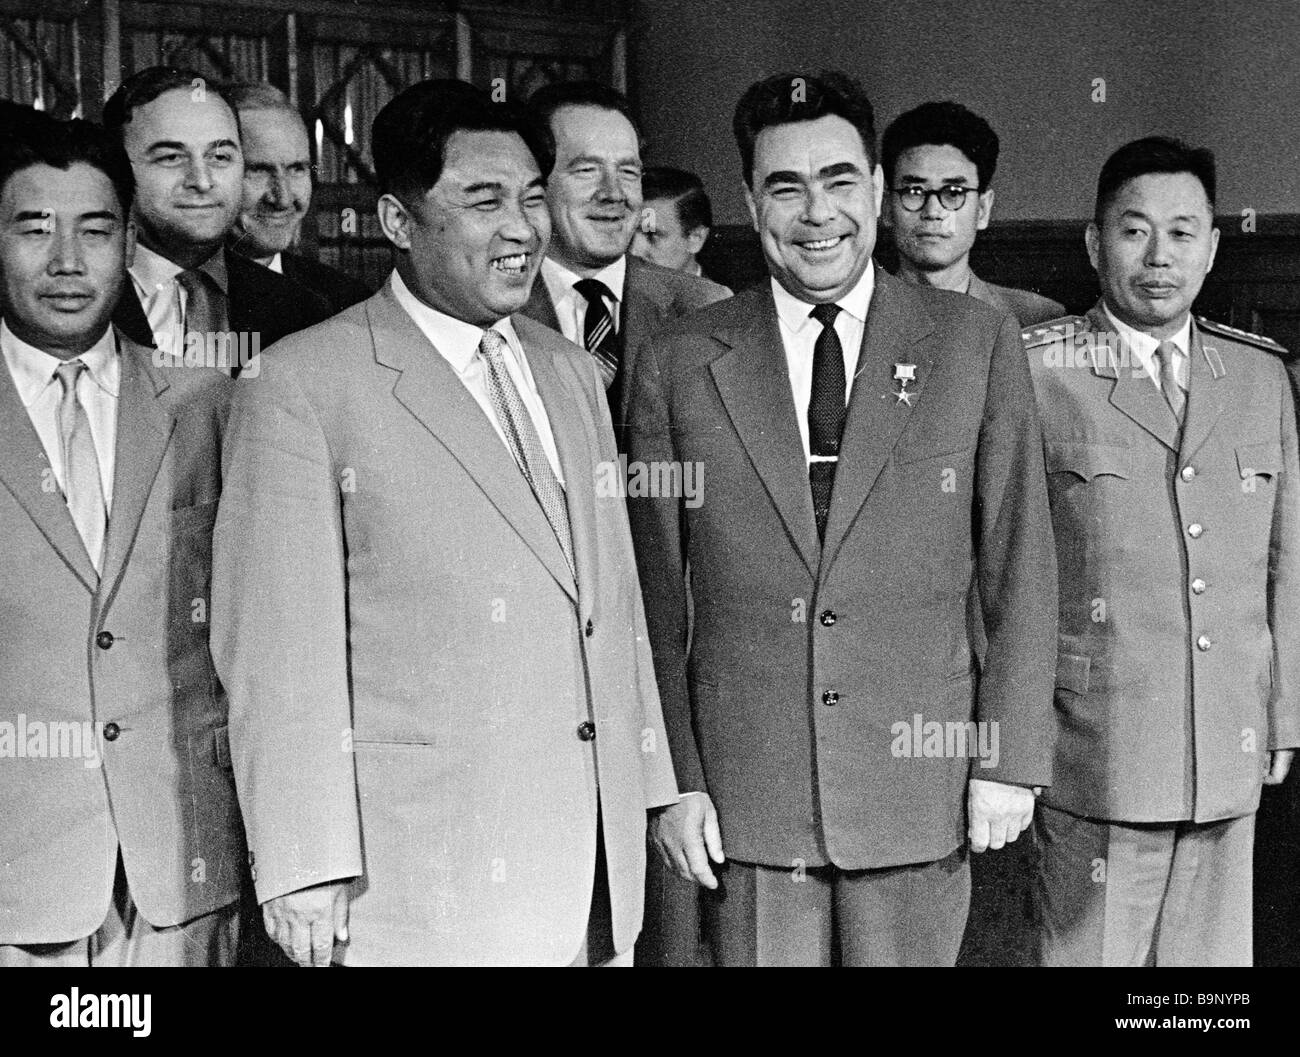 The Soviet and North Korean leaders Leonid Brezhnev 3rd right and Kim Il Sung 4th left - Stock Image